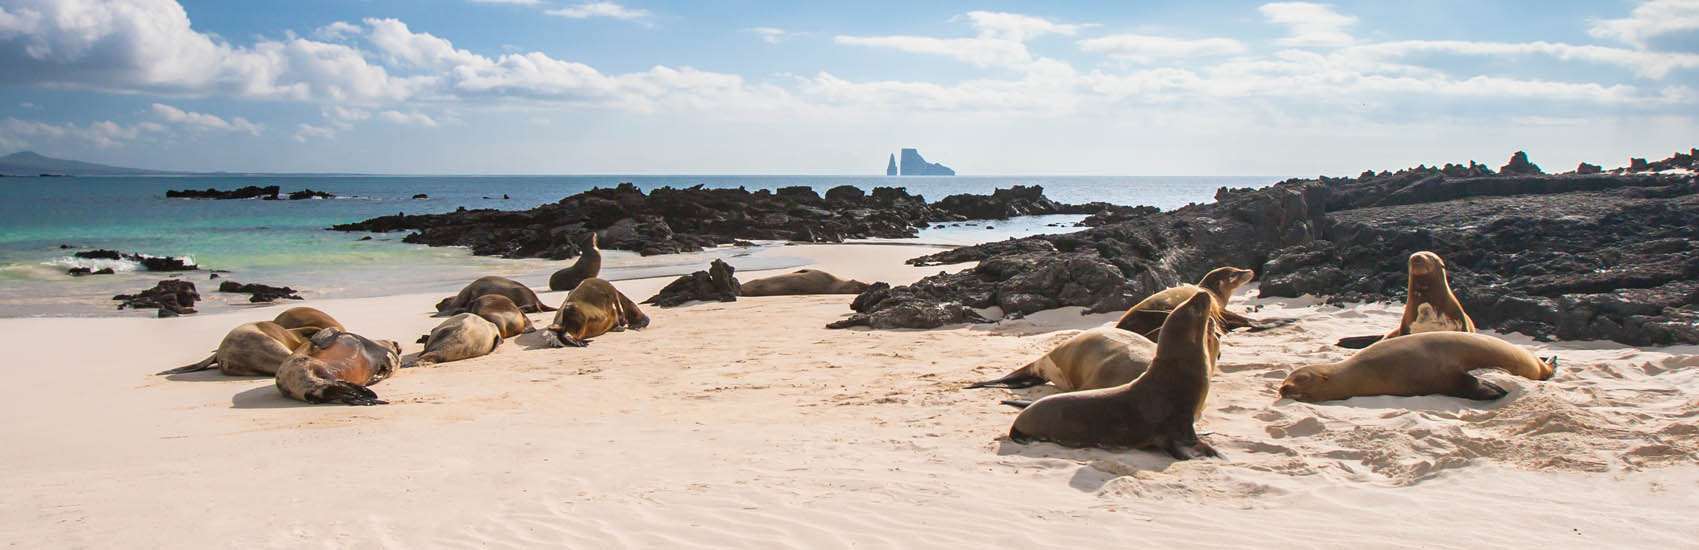 Explore with Celebrity Cruises in the Galapagos 2